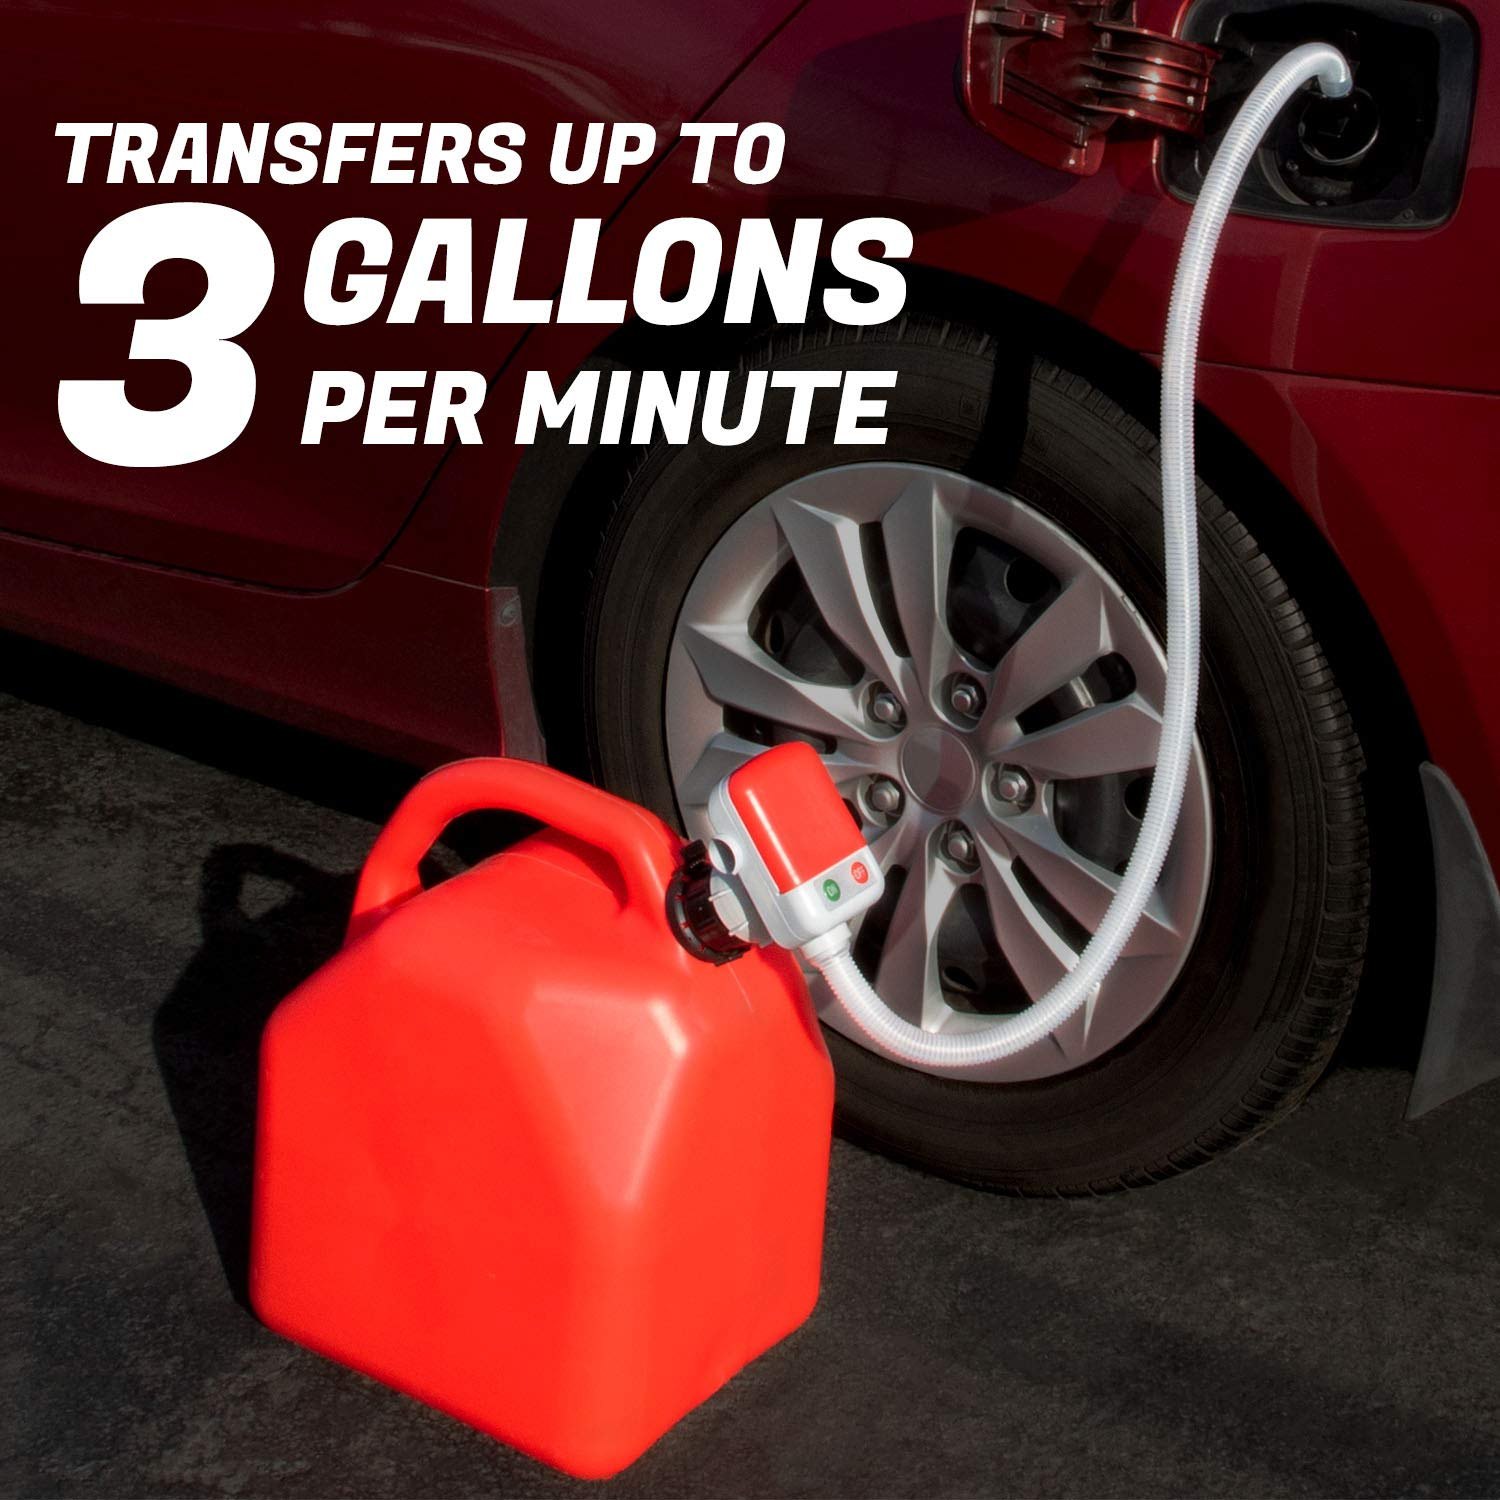 Garage Gas Can Pump/No More Heavy Gas Can Lifting/No More backache/Dad Father Birthday Gift Present Present from Daughter Son Wife/Birthday Gifts for him Men by TERA PUMP (Image #5)